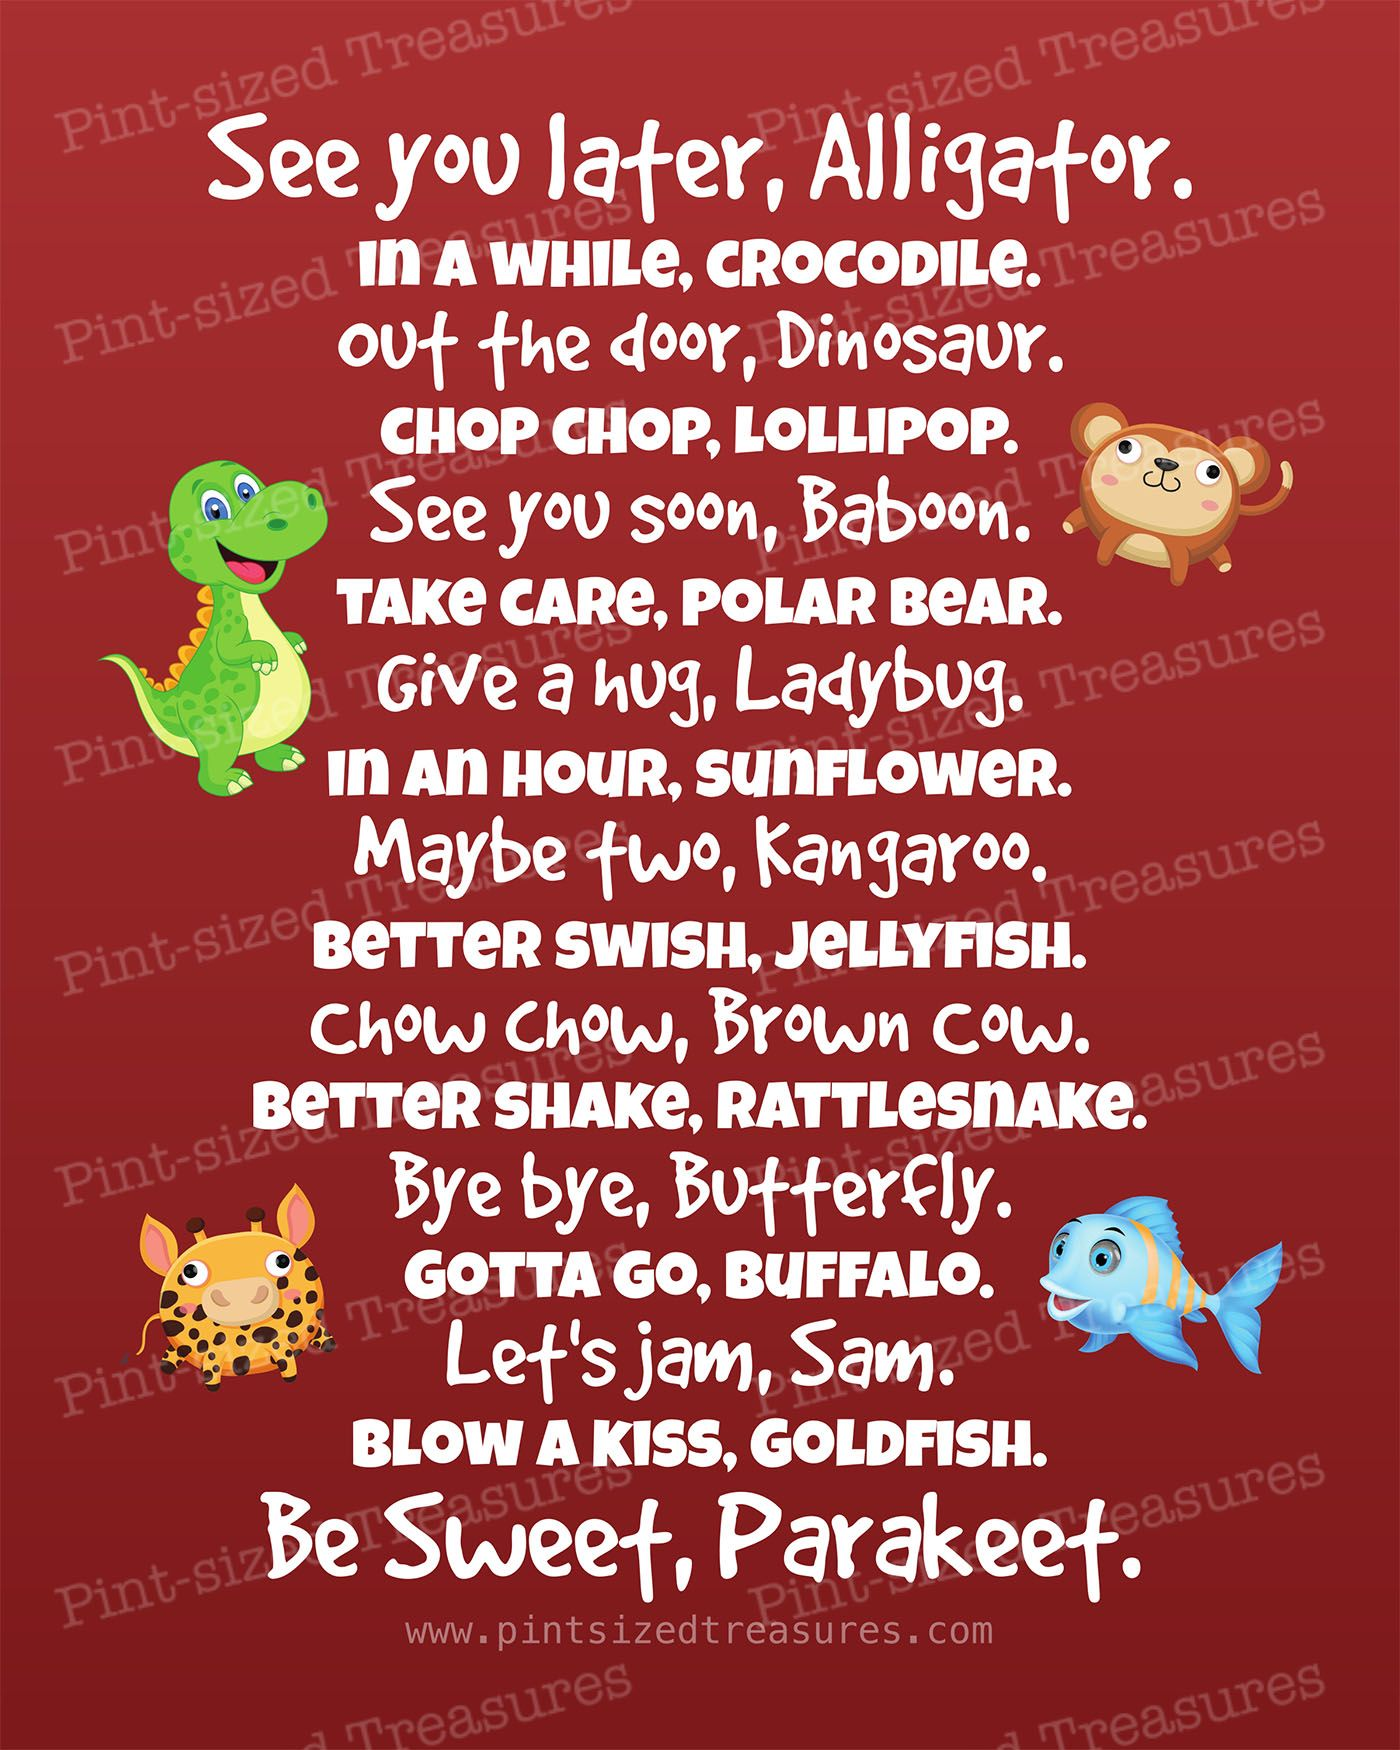 clever quotes about valentines day - Best Tear Free Ways to Say Bye to Your Kids